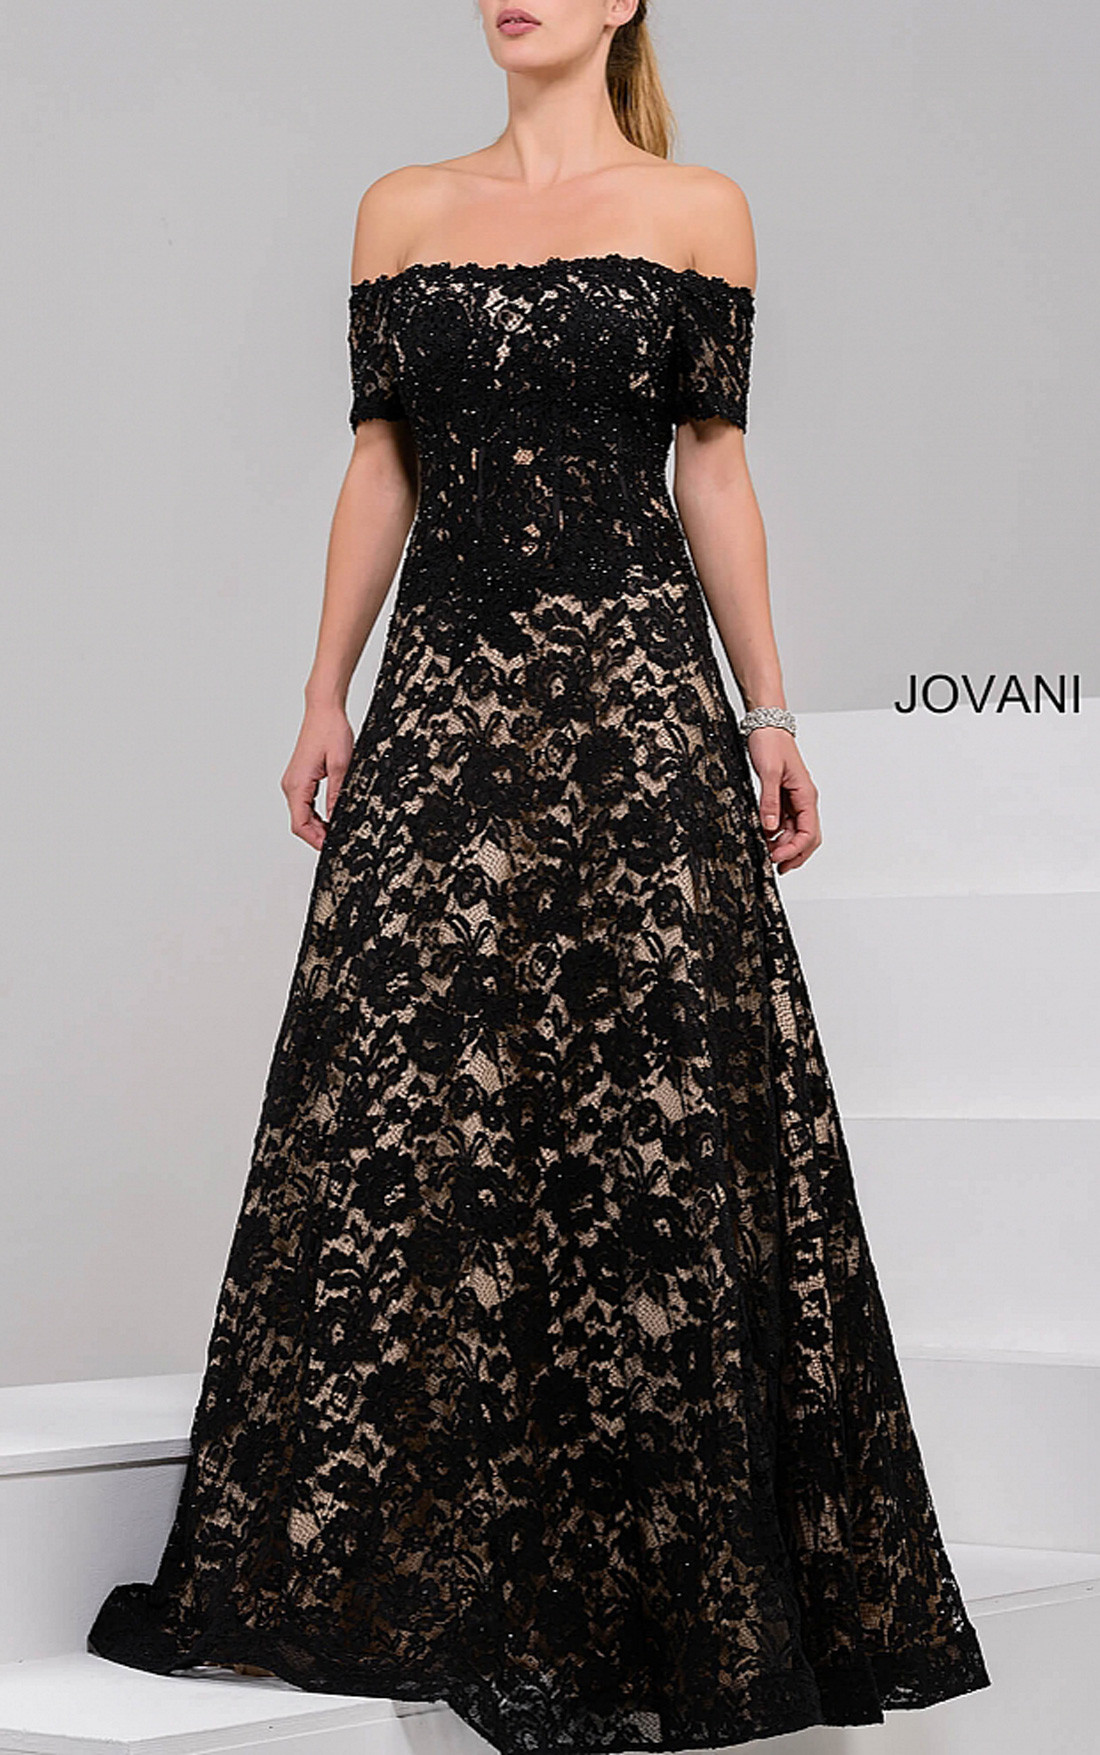 Jovani - Black Off The Shoulder Lace Ballgown (42828)